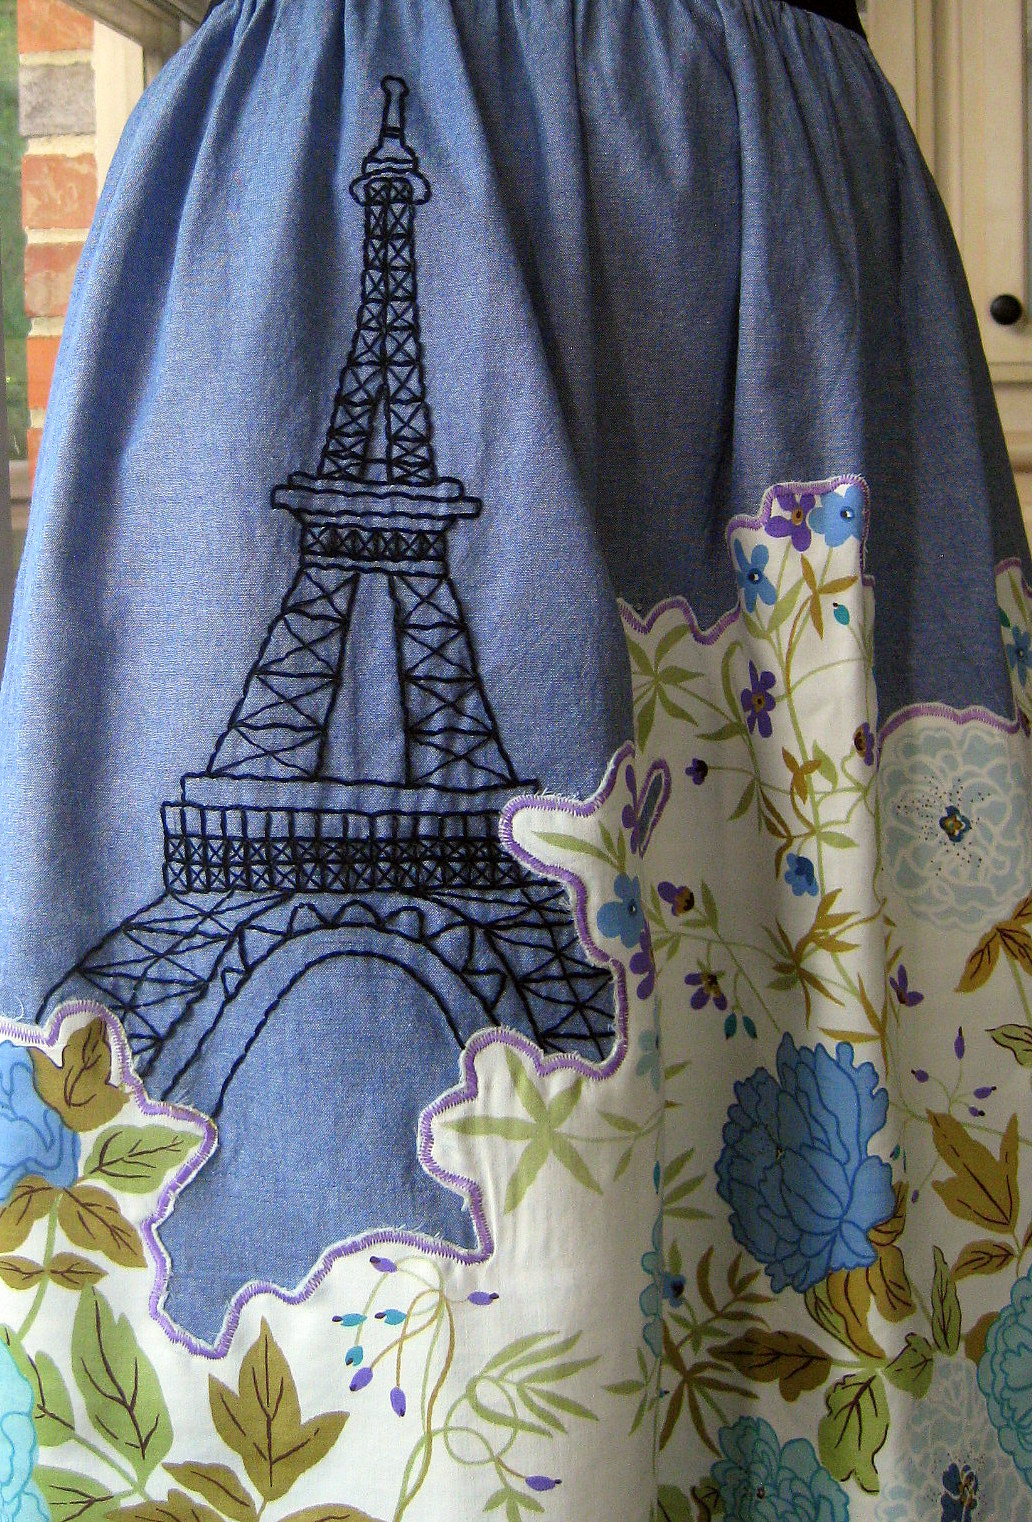 Cassie Stephens Eiffel Tower Embroidery